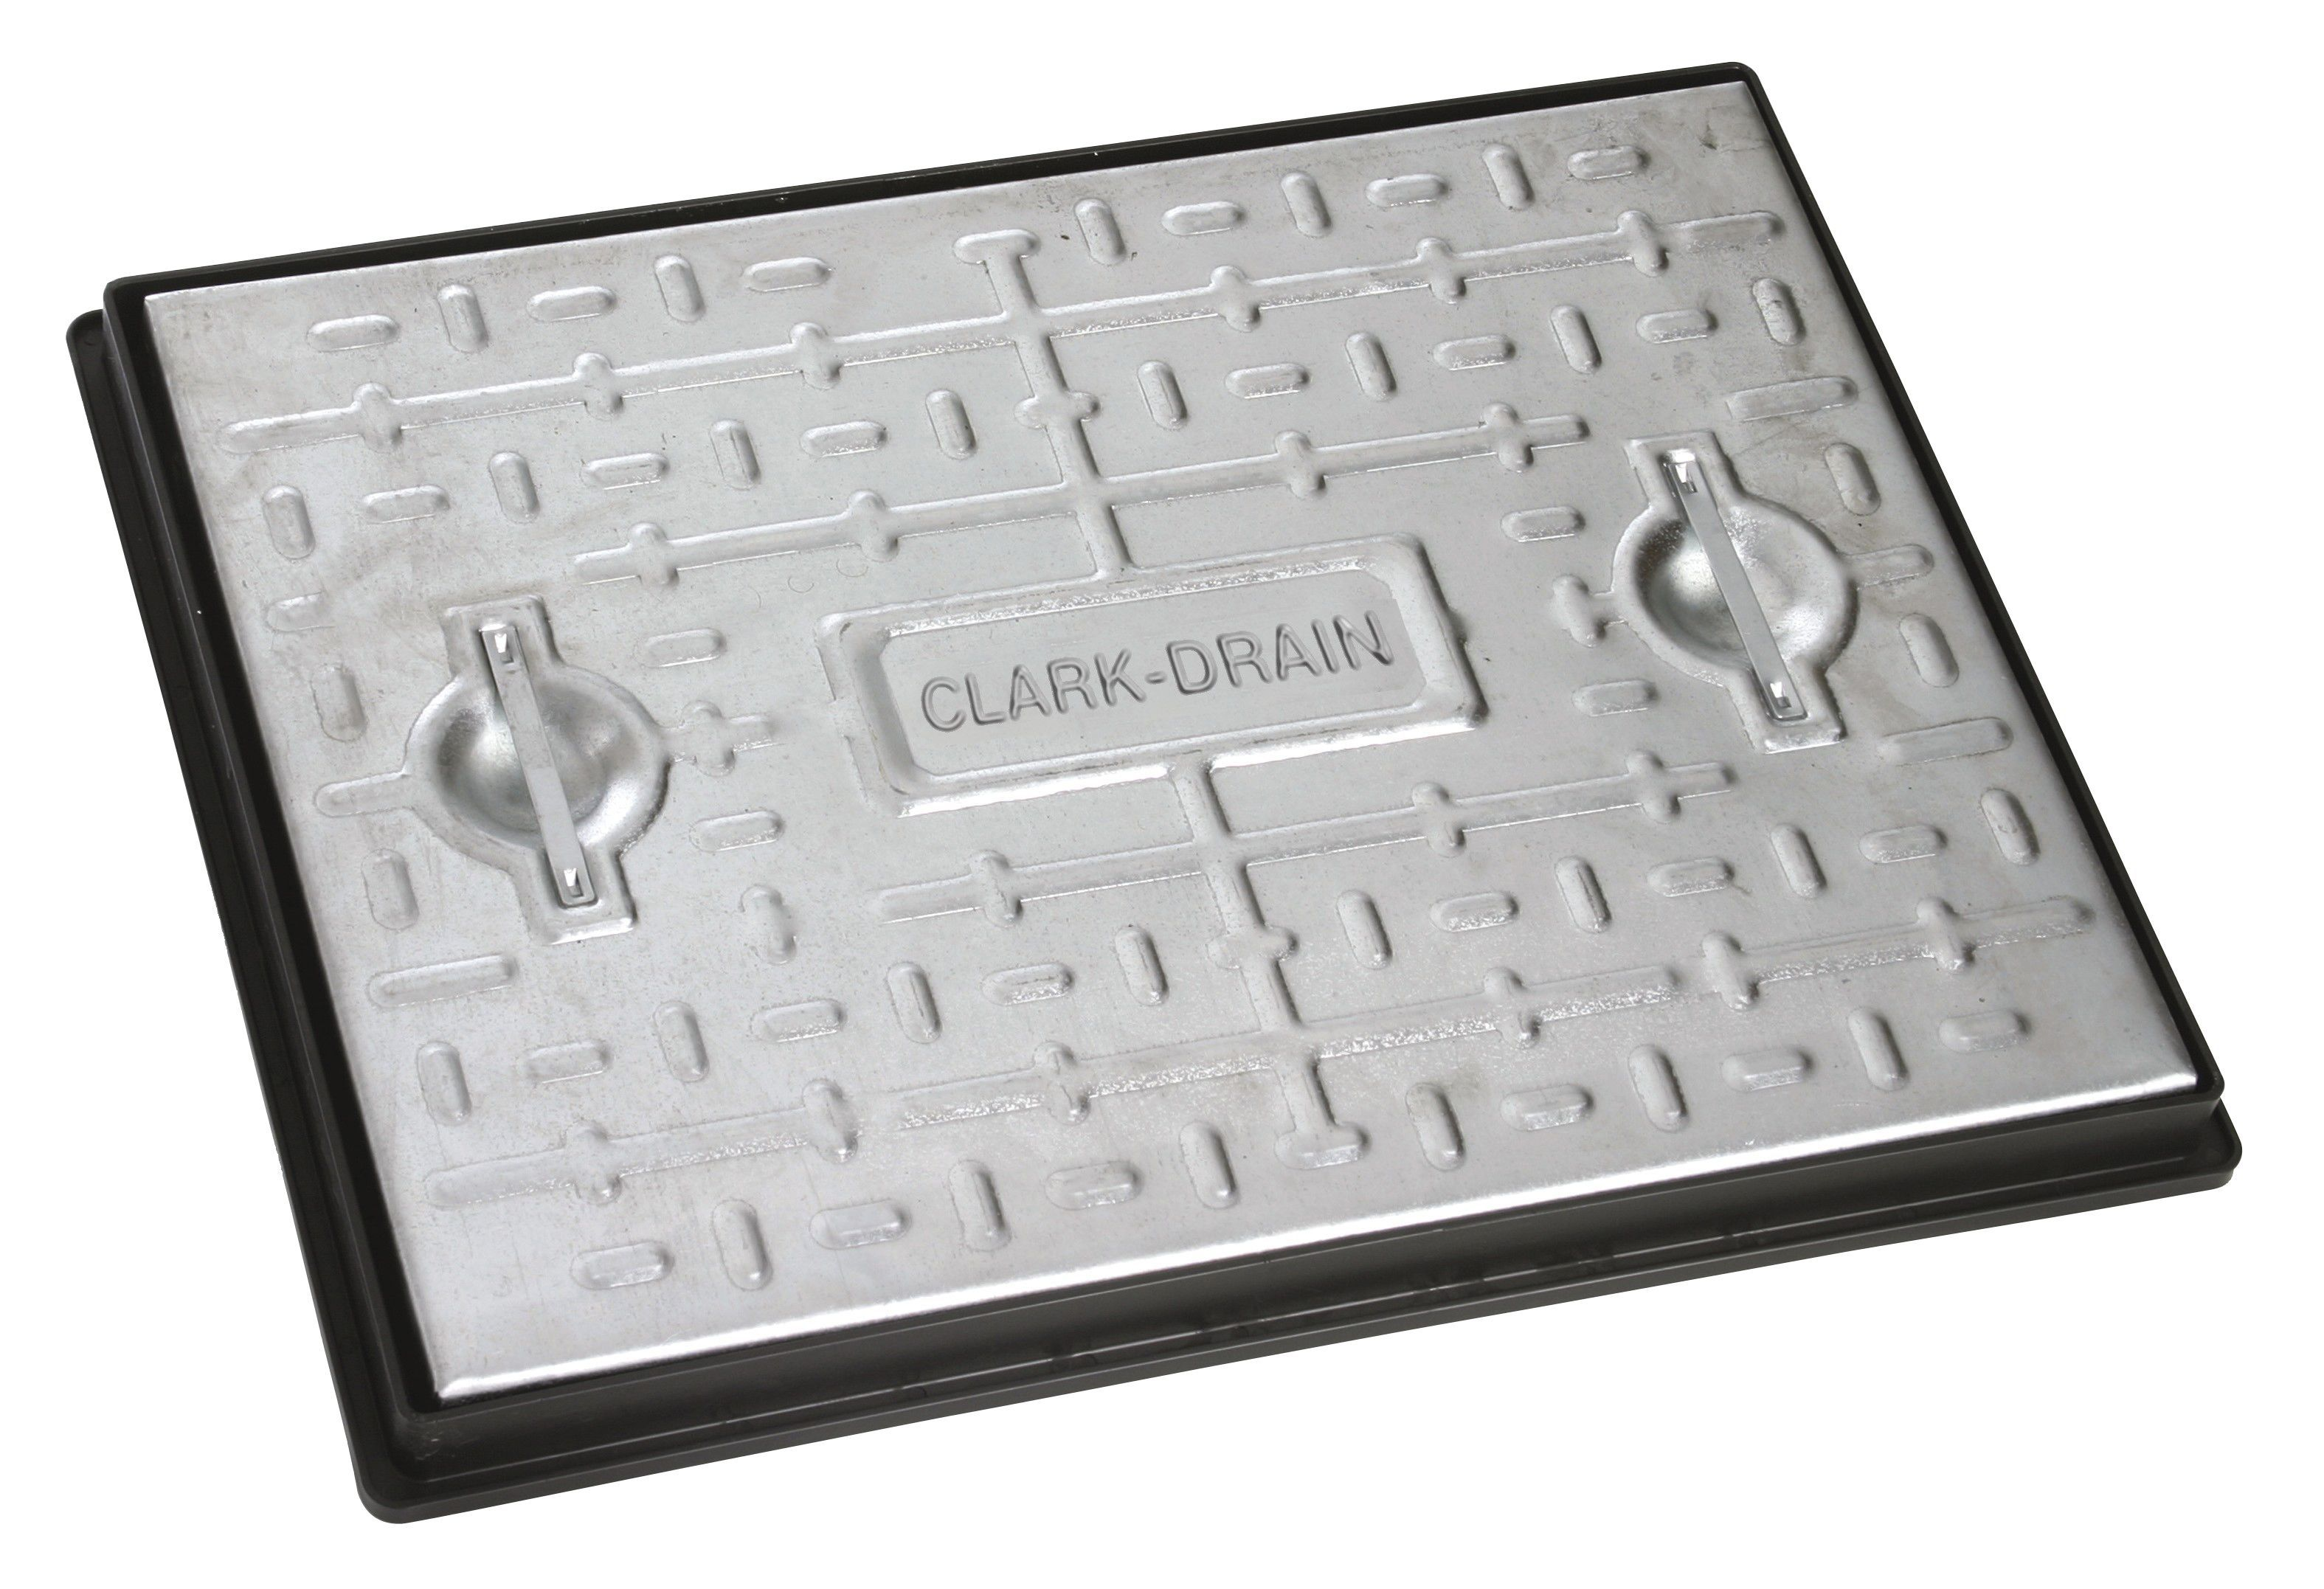 Clark 5 Tonne Gpw Manhole Cover With Frame Departments